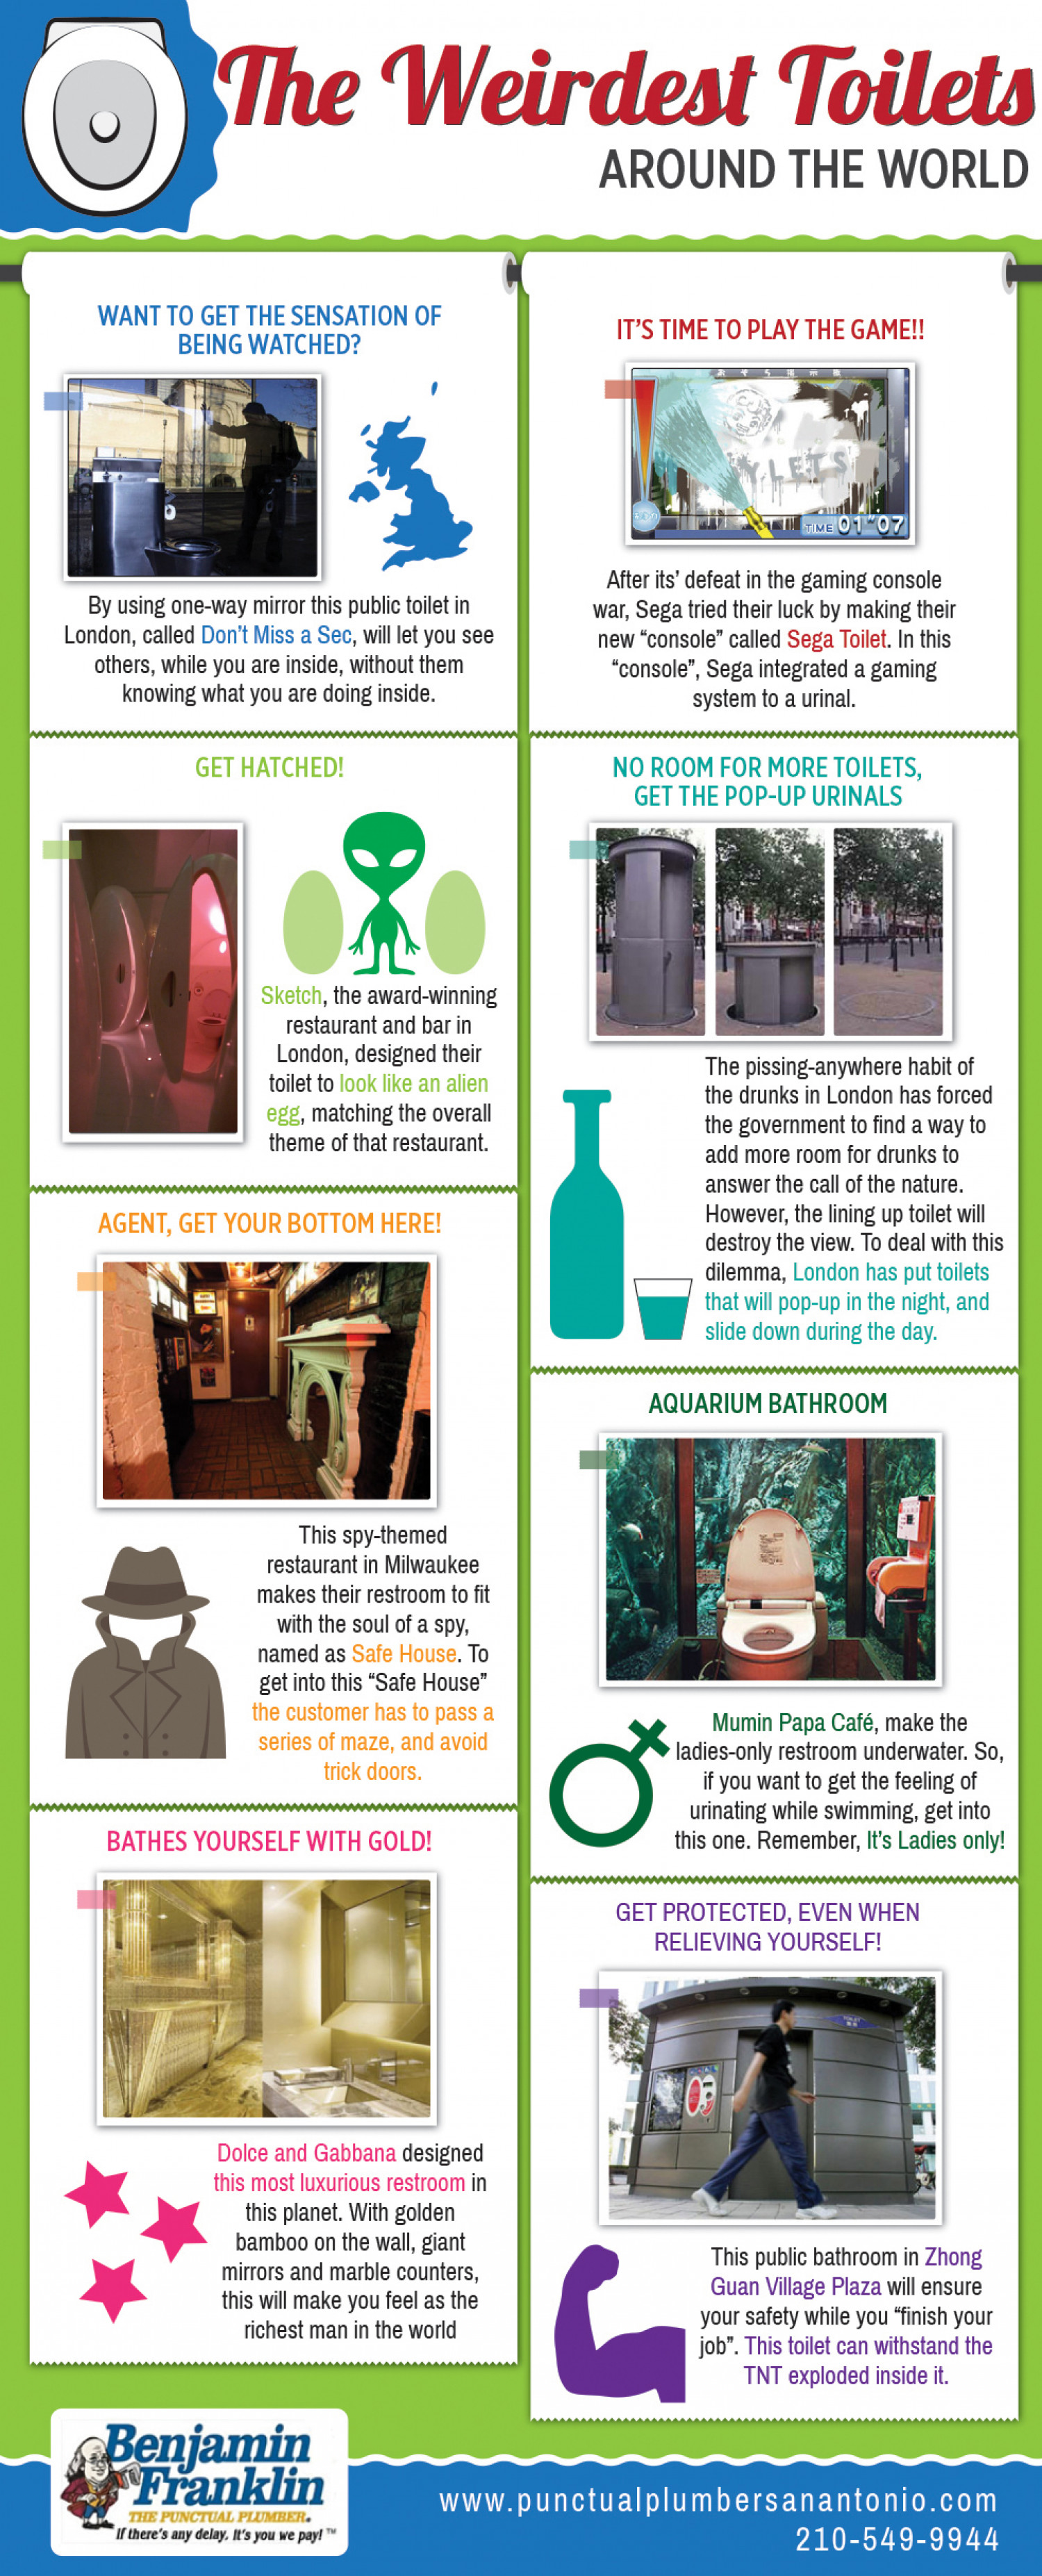 The Weirdest Toilets Around the World Infographic